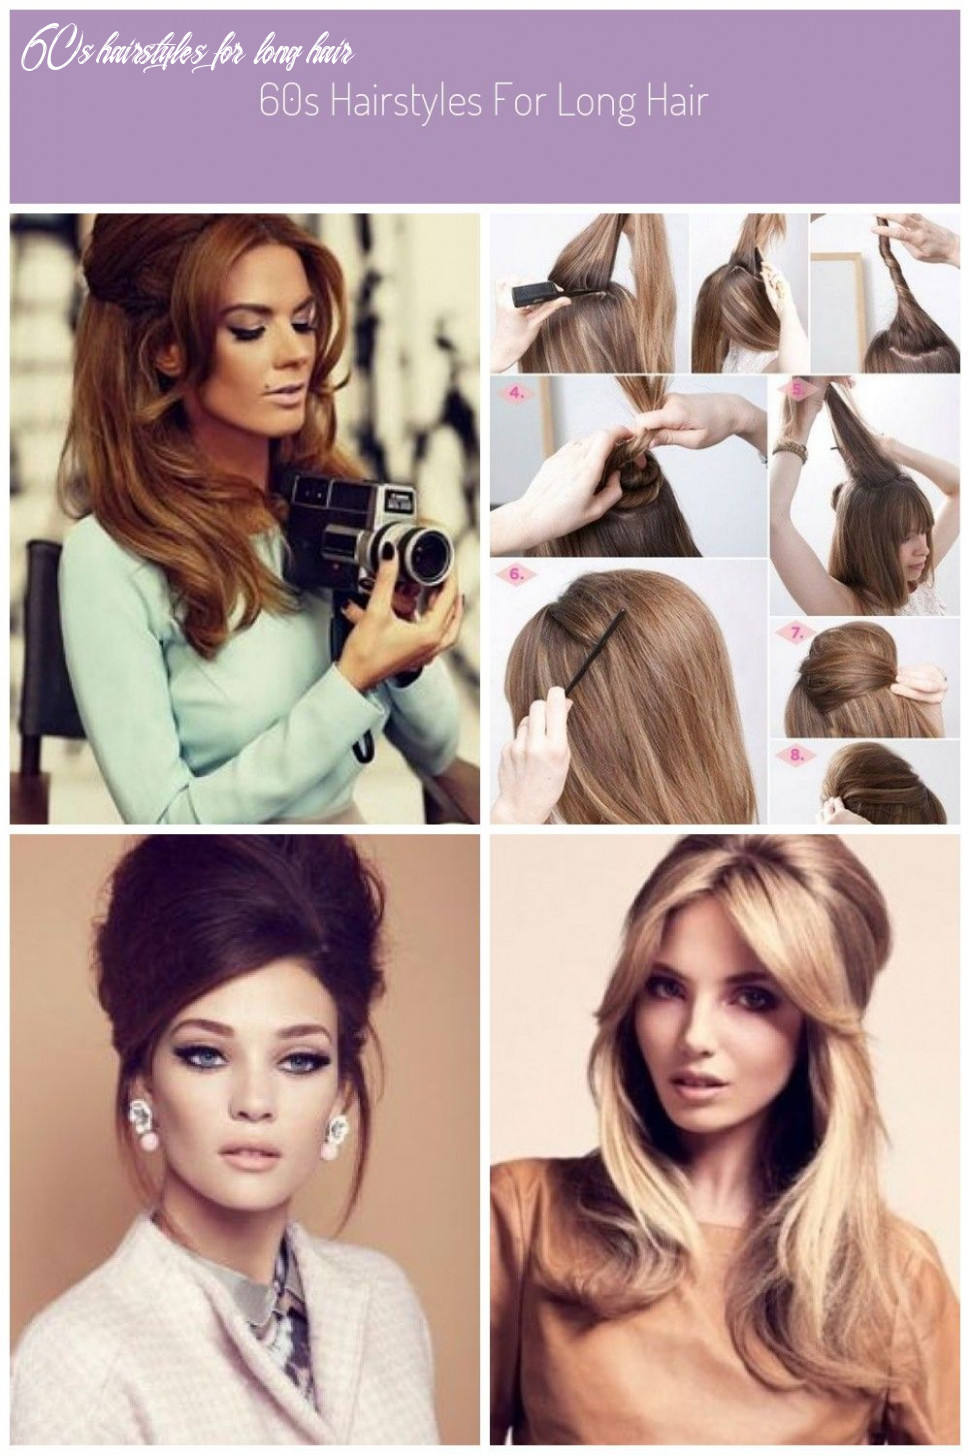 10s hairstyles for long hair | long hair styles 60s hairstyles for long hair